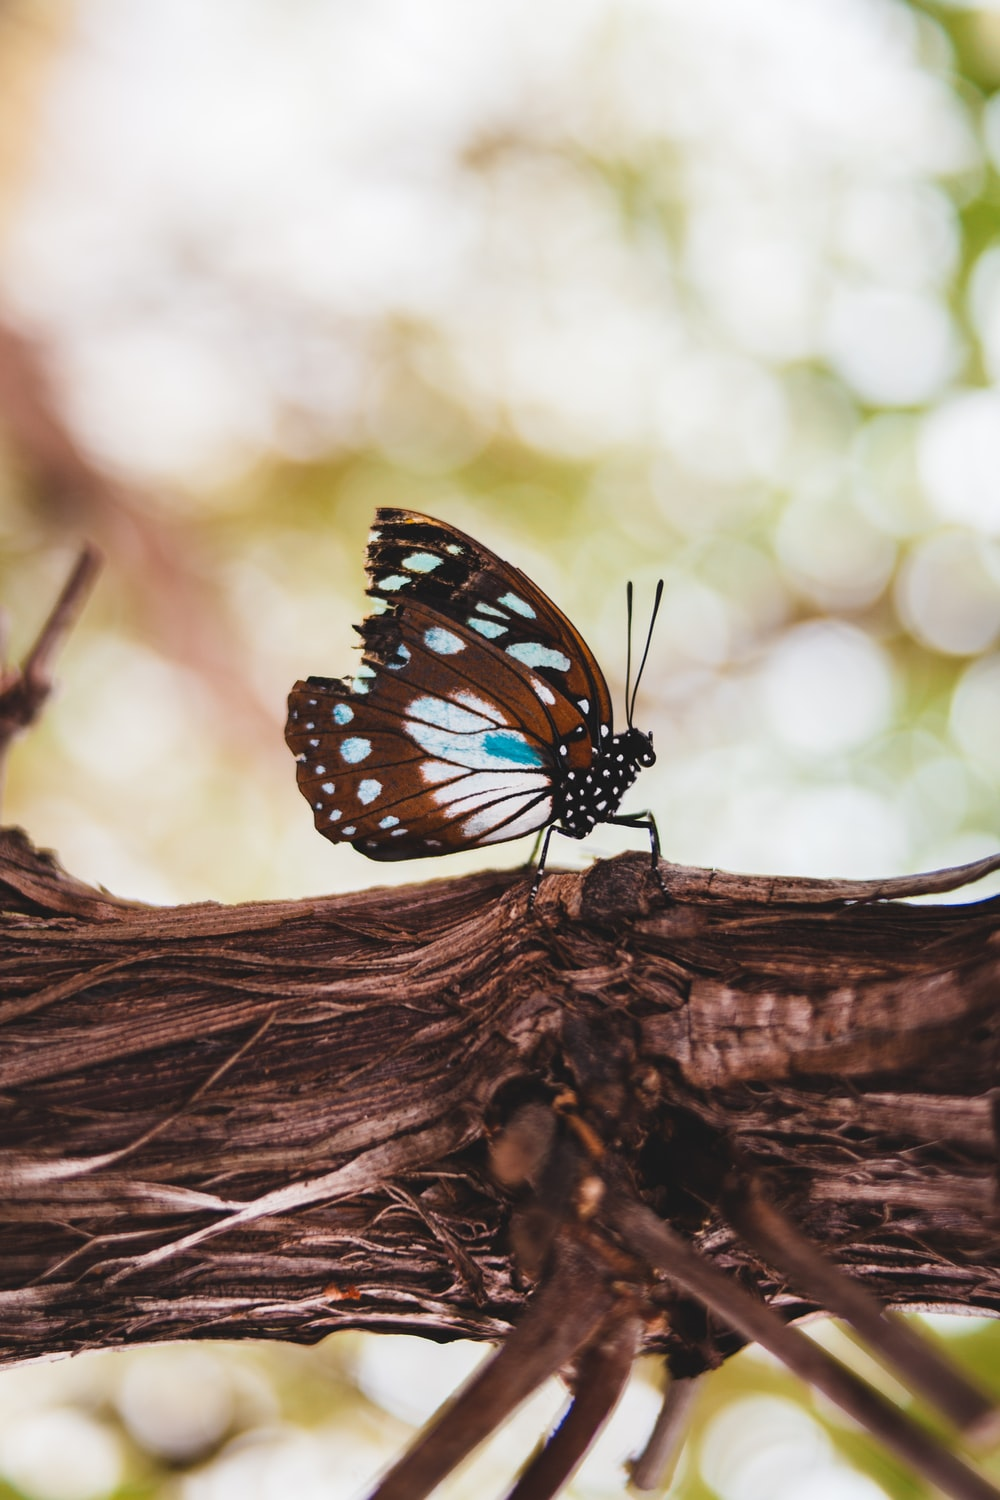 black white and blue butterfly perched on brown tree branch in close up photography during daytime